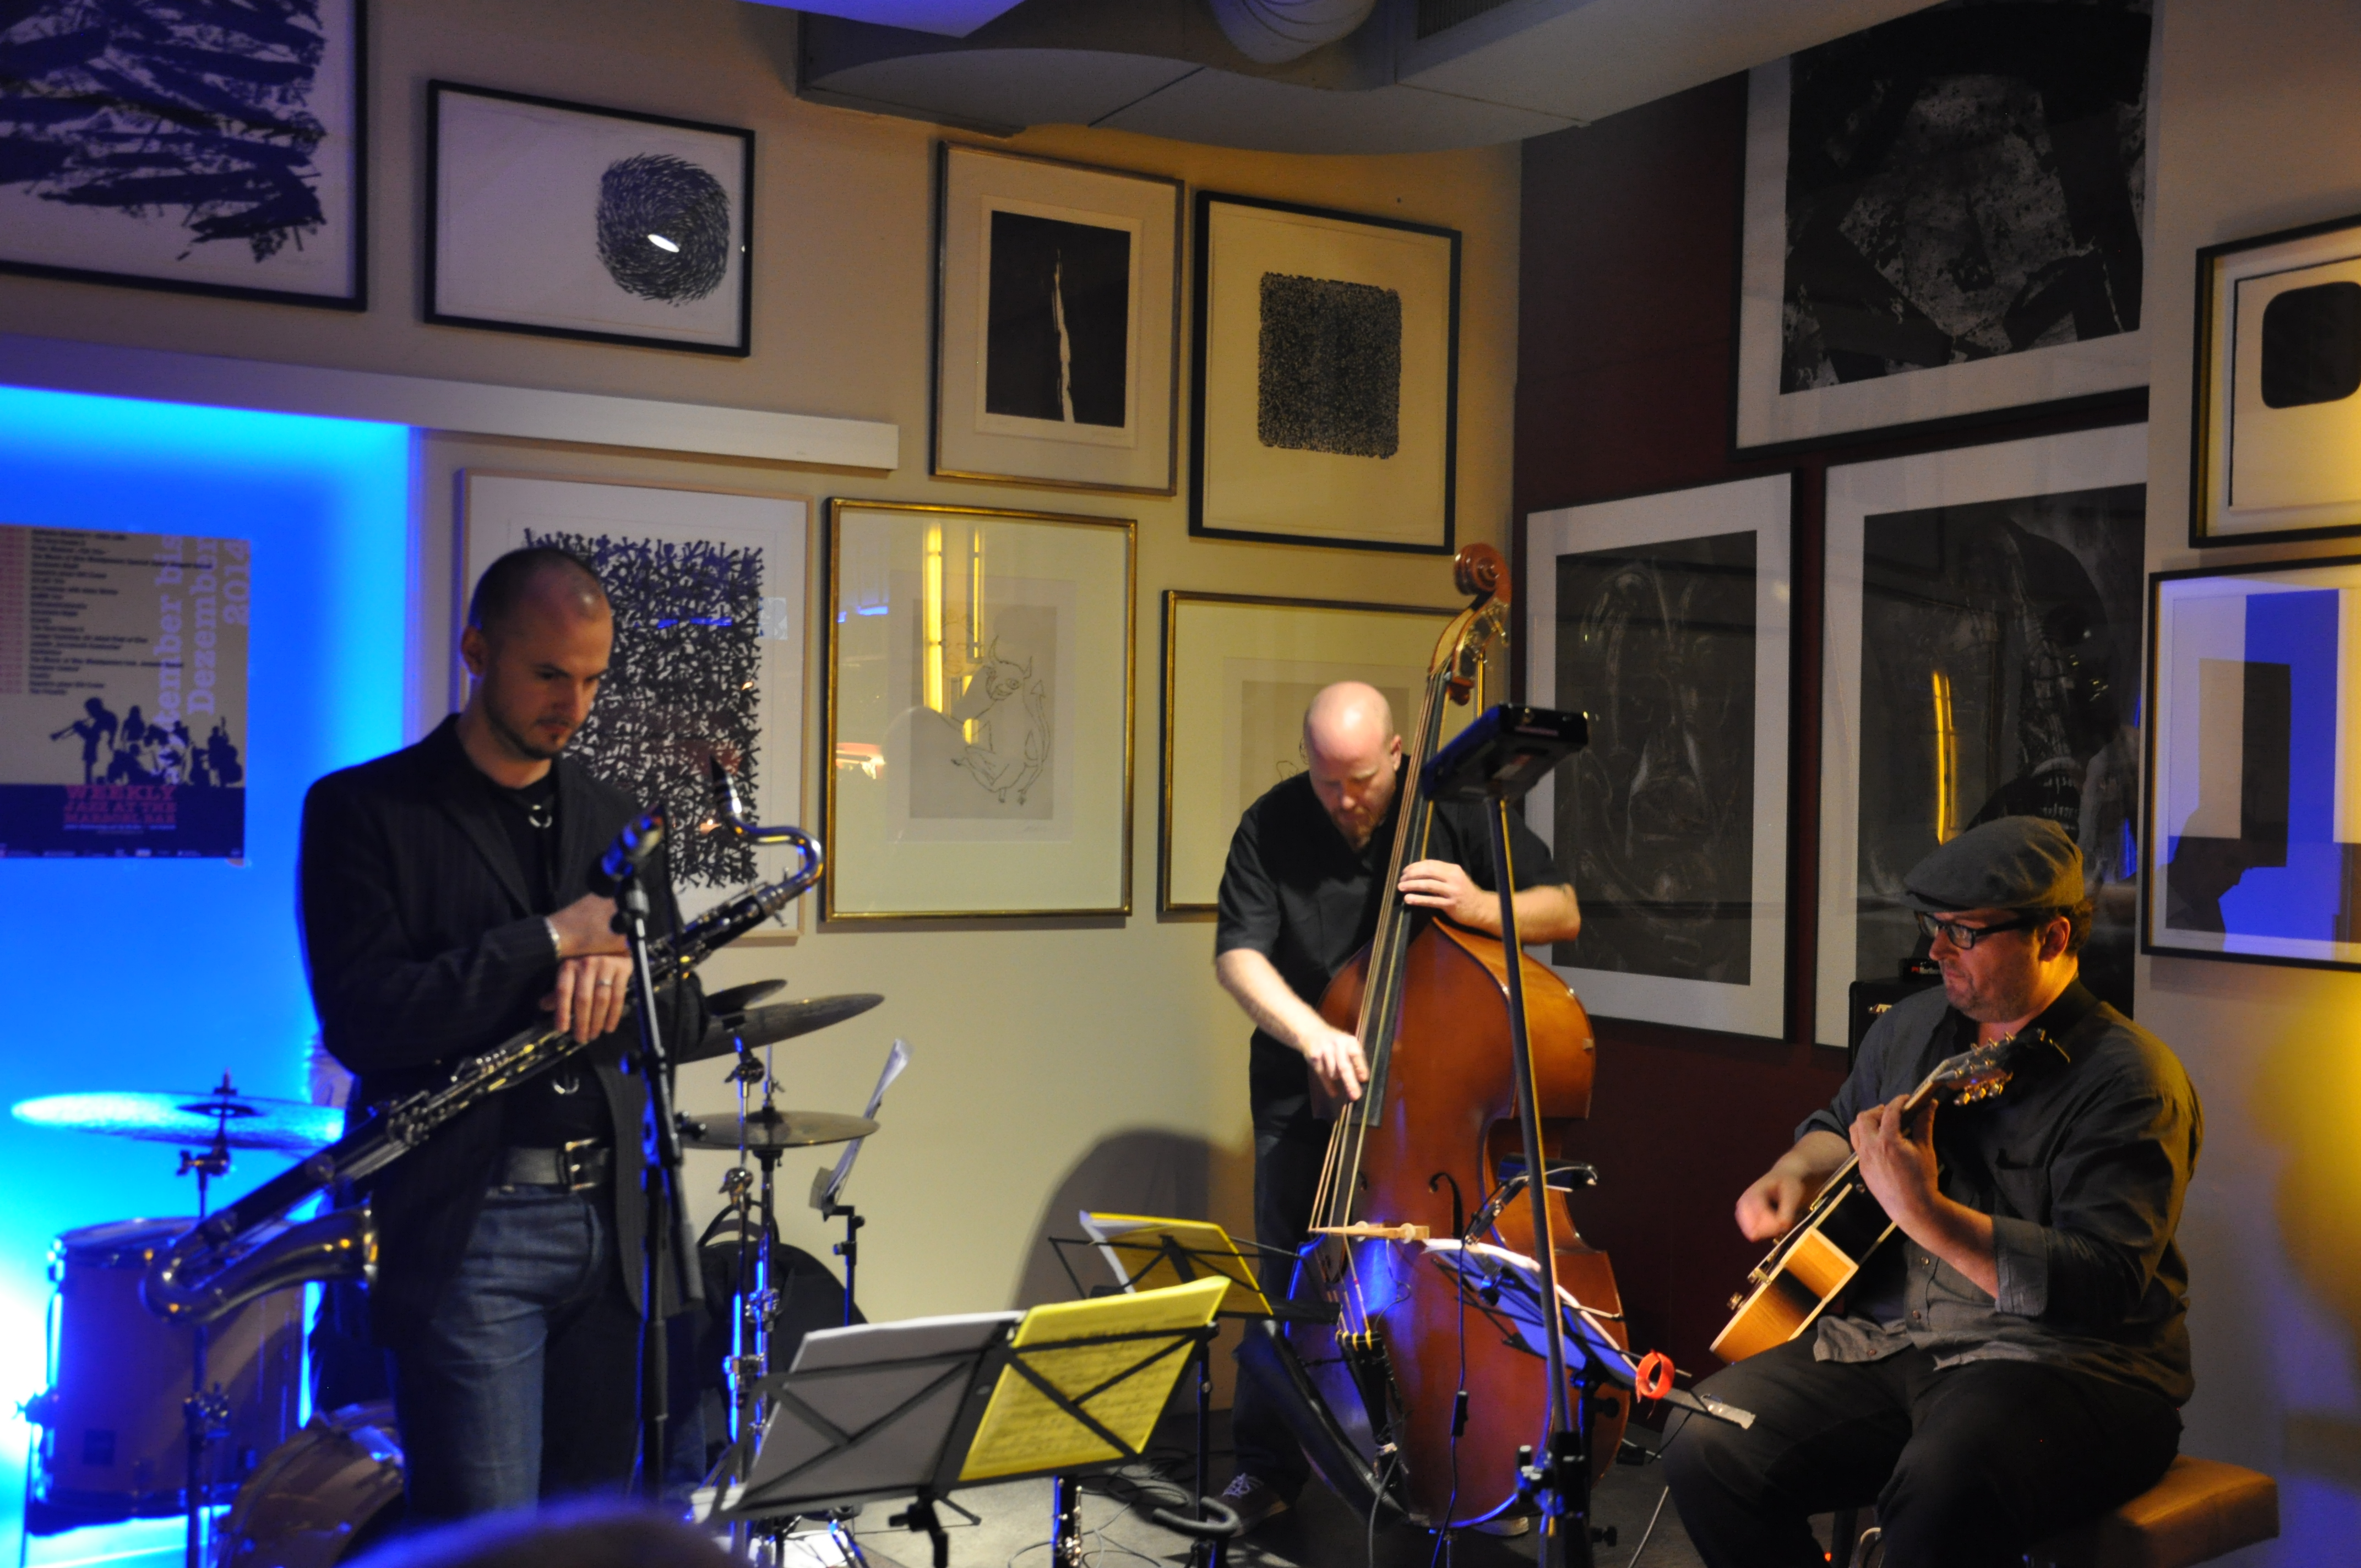 Weekly jazz – il concert cun Rees Coray, Rolf Caflisch, Patrick Holzer e Simon Wyrsch.